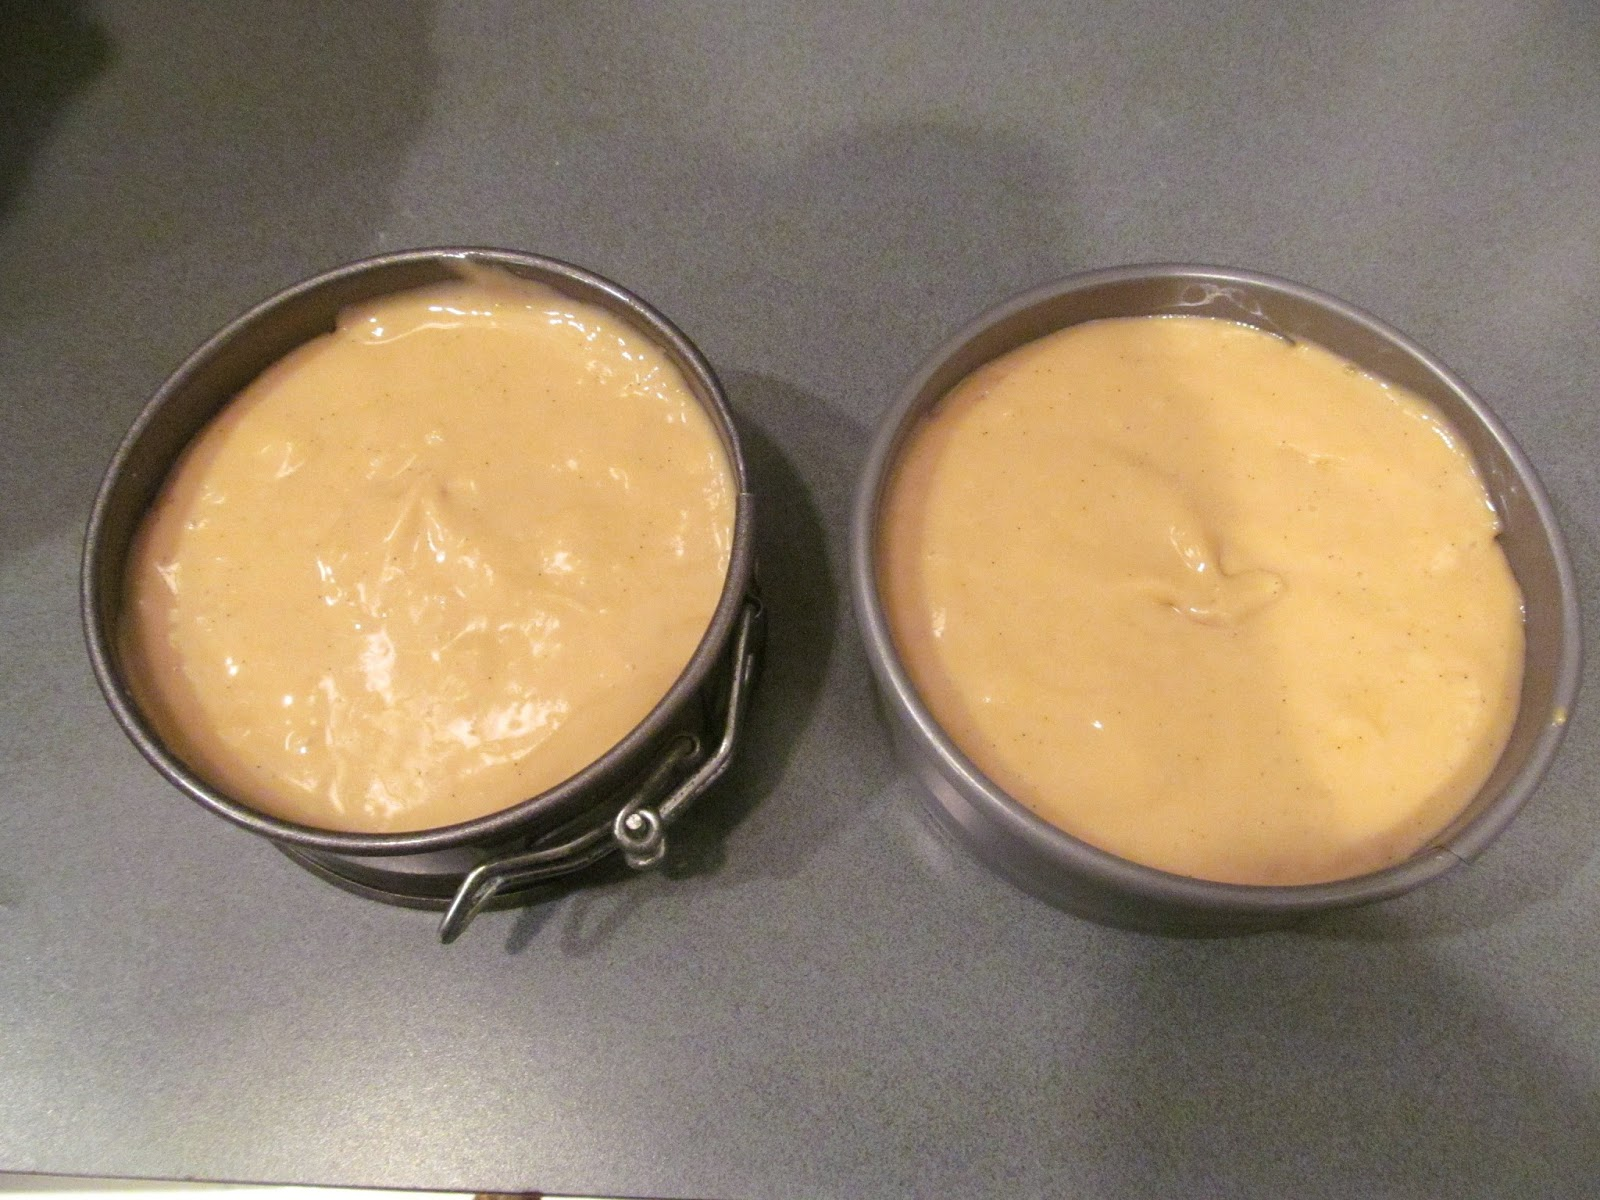 baking cheesecakes